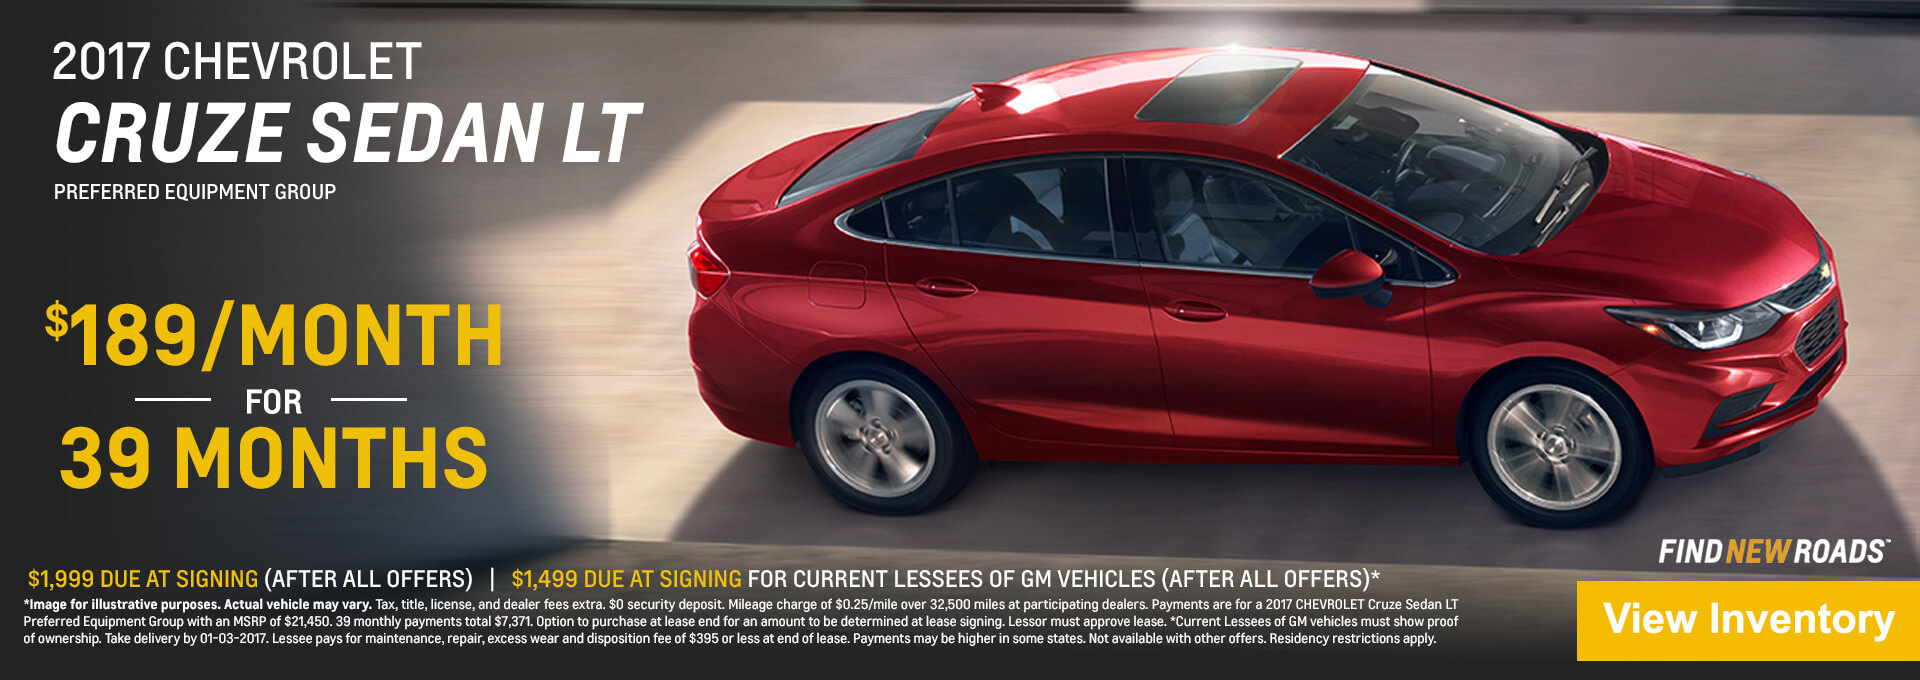 Culver City Chevrolet Ss >> SoCal Chevy | New and Used Chevrolet Vehicles | Serving Los Angeles, Ventura and San Bernardino ...